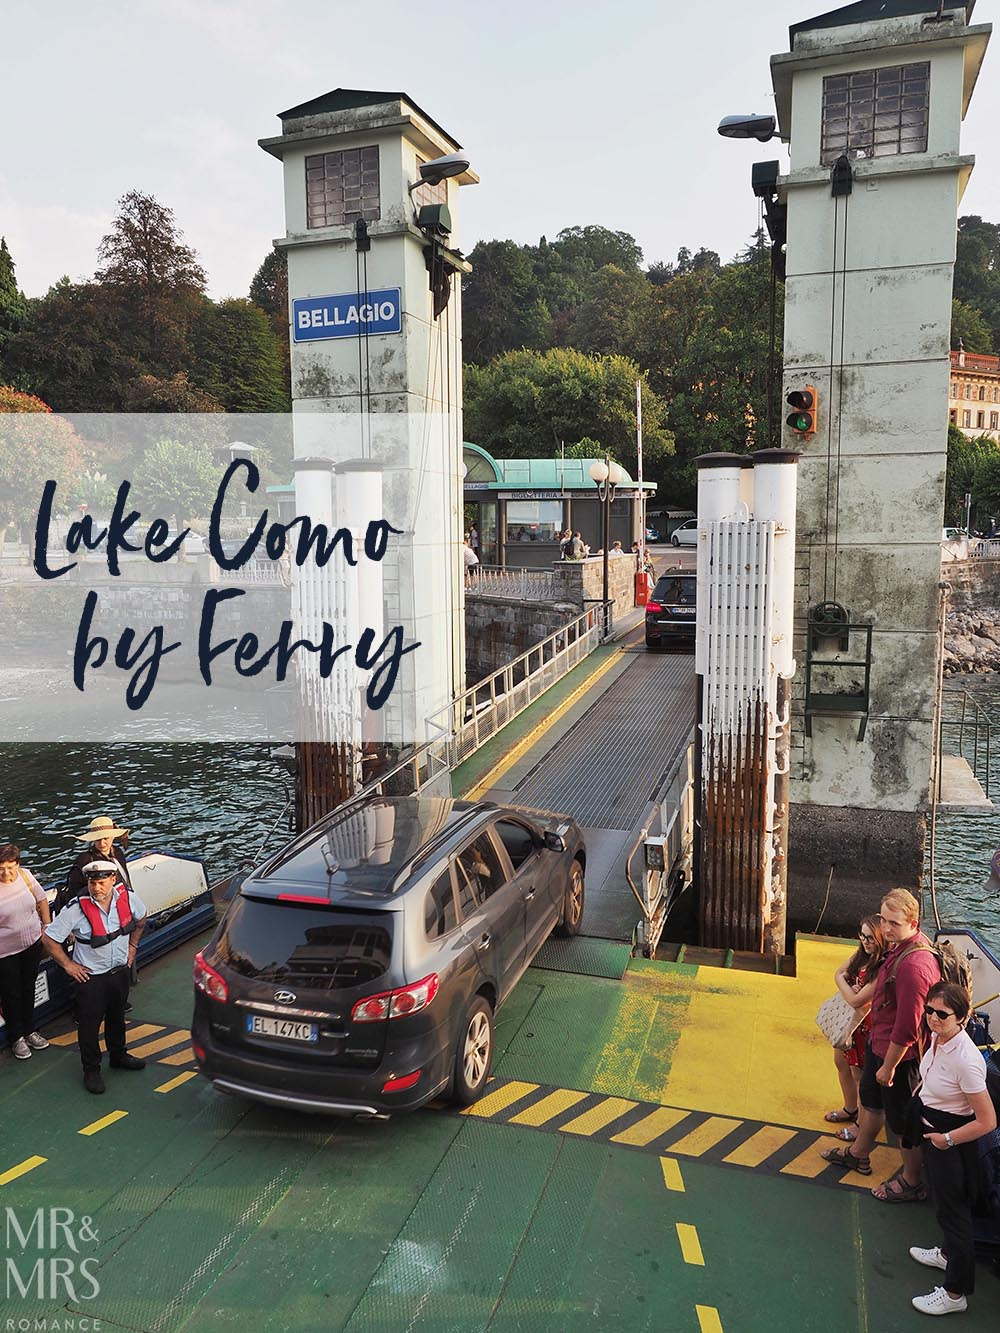 Local ferry at Bellagio with car coming off and pedestrian passengers waiting - Ultimate Guide to Lake Como, Italy